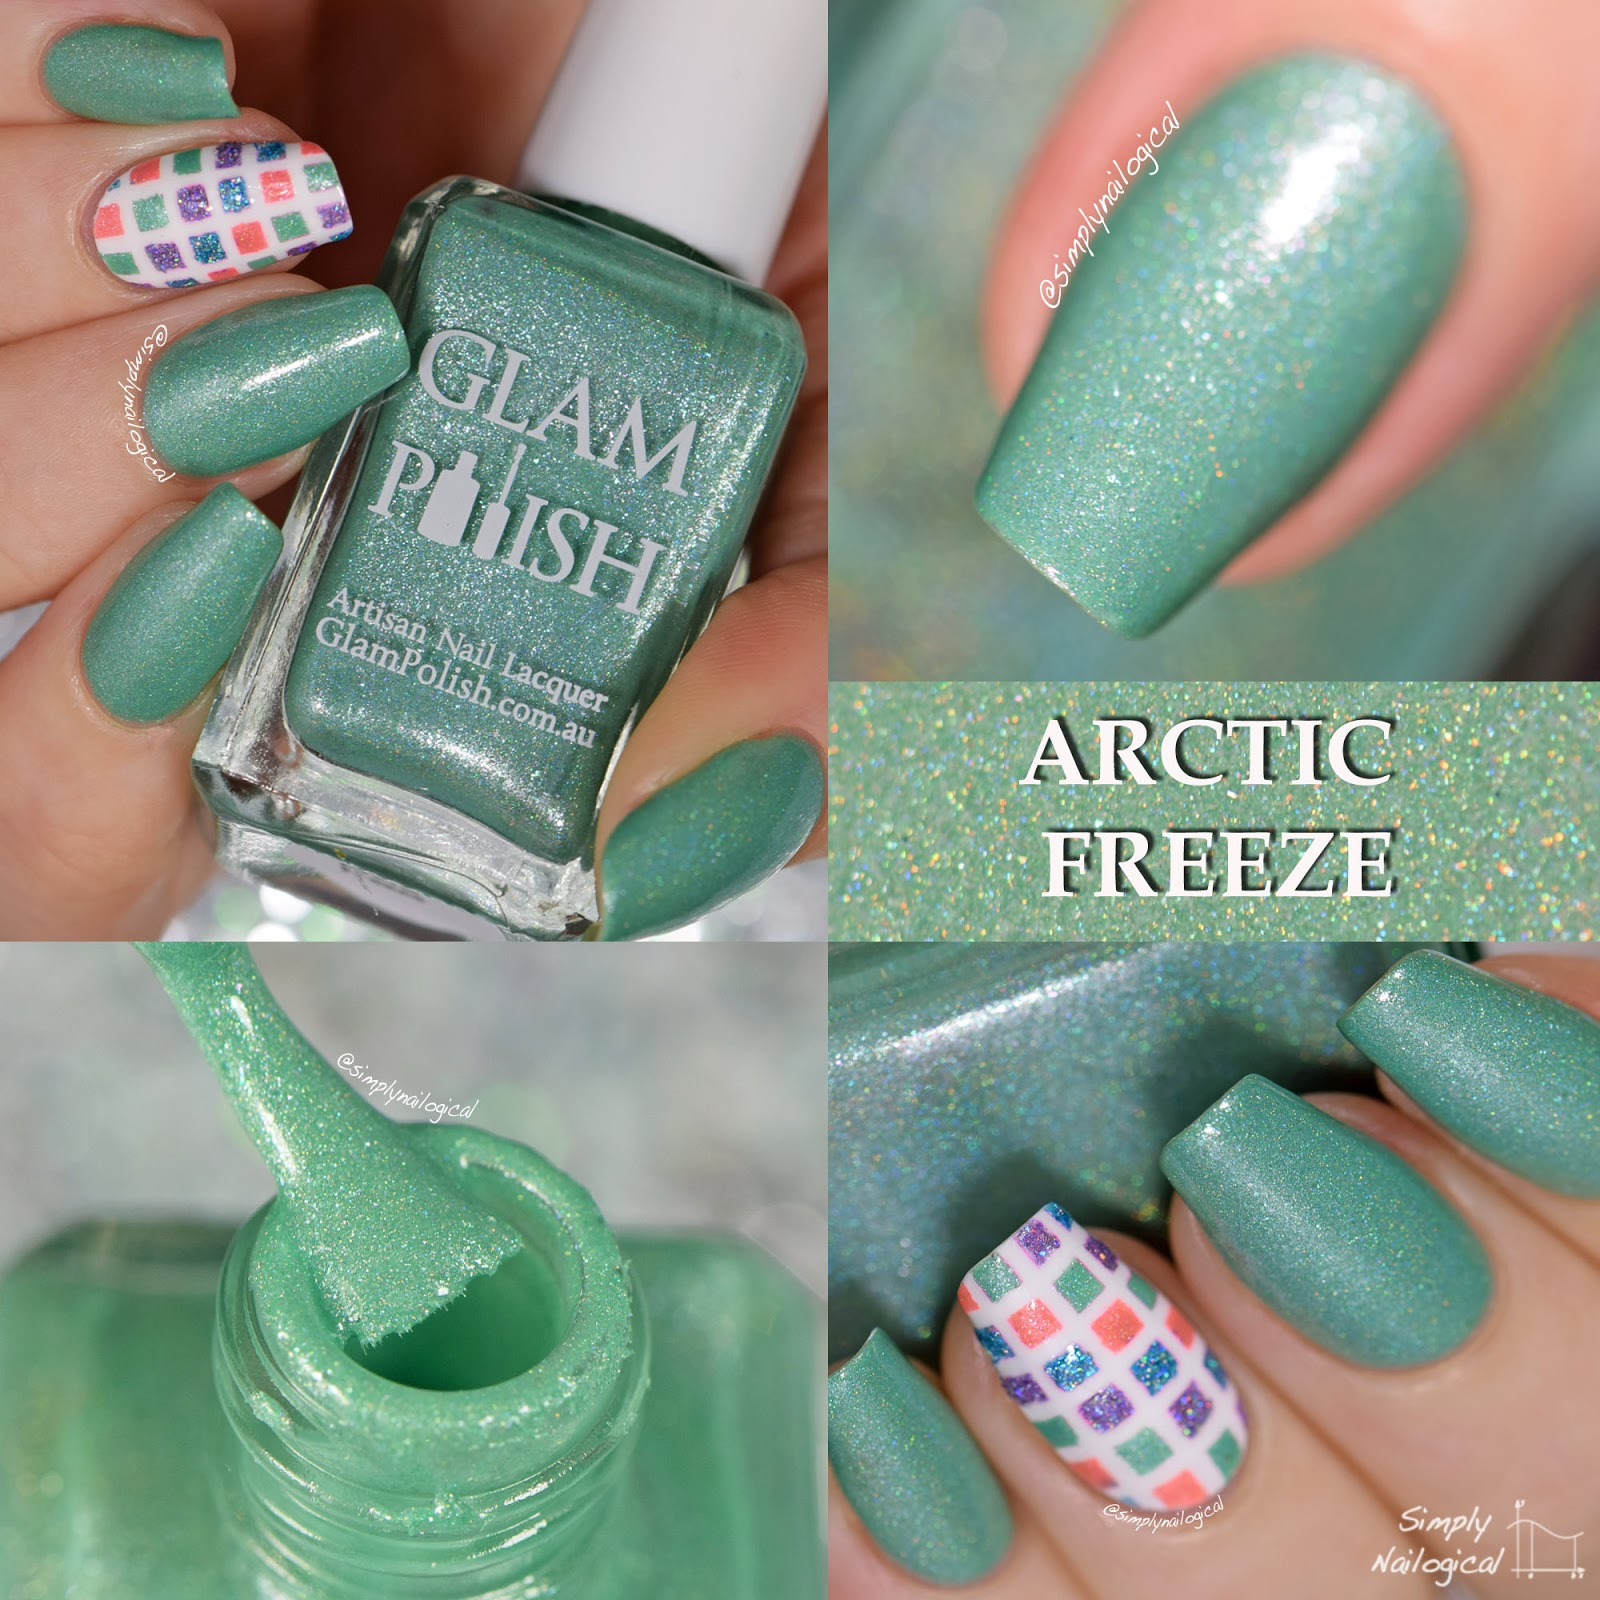 Glam Polish December 2014 Arctic Freeze swatch